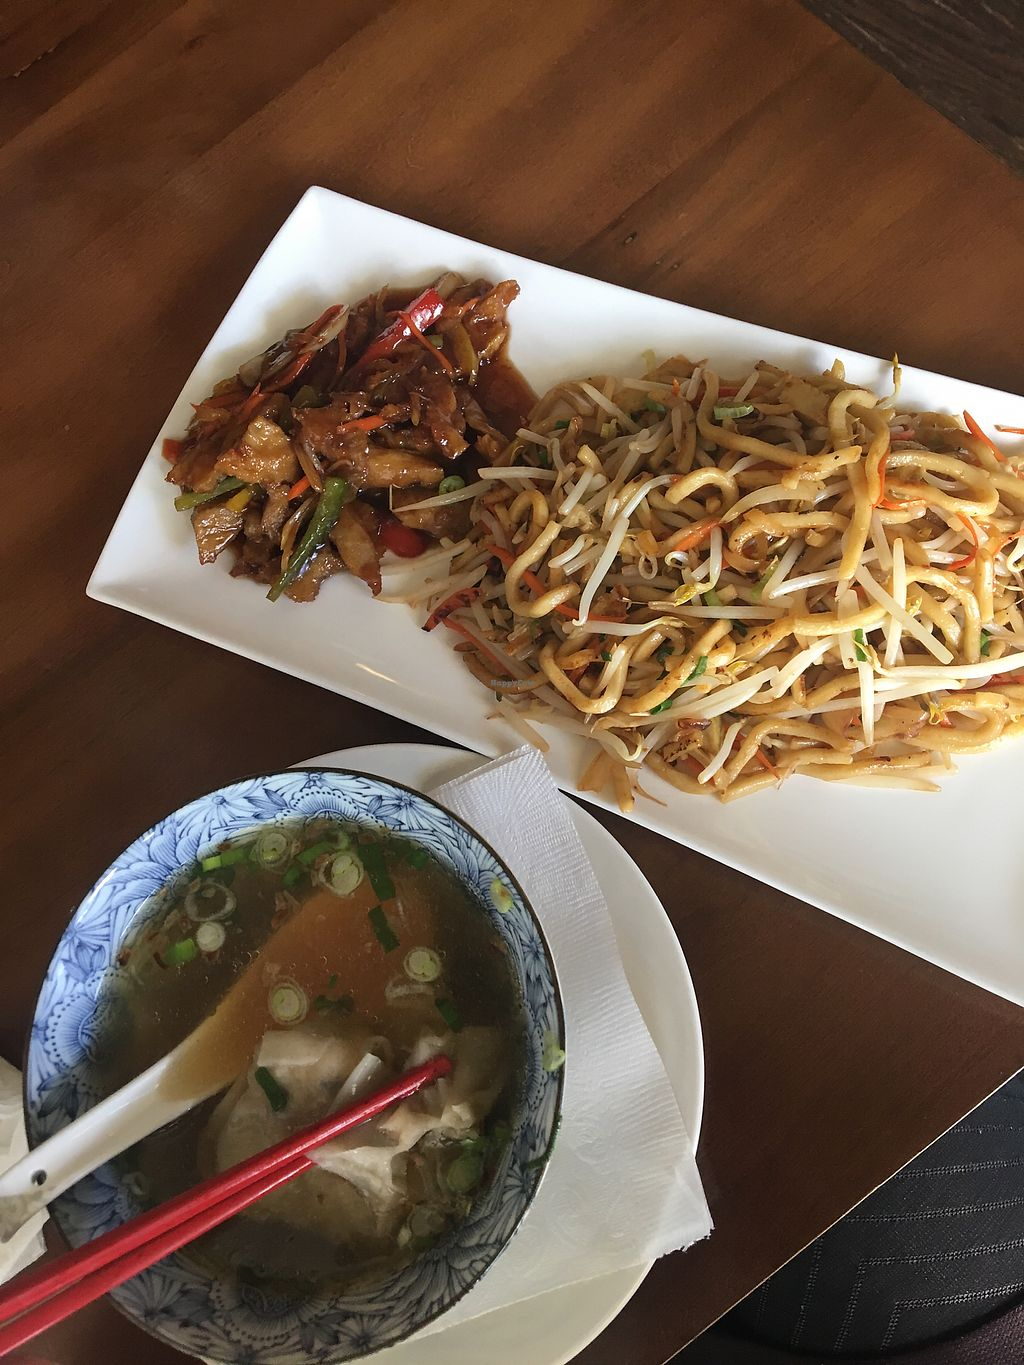 """Photo of Seasoned Fusion Tastes  by <a href=""""/members/profile/form"""">form</a> <br/>Vegan combo #2 <br/> April 22, 2018  - <a href='/contact/abuse/image/98715/389633'>Report</a>"""